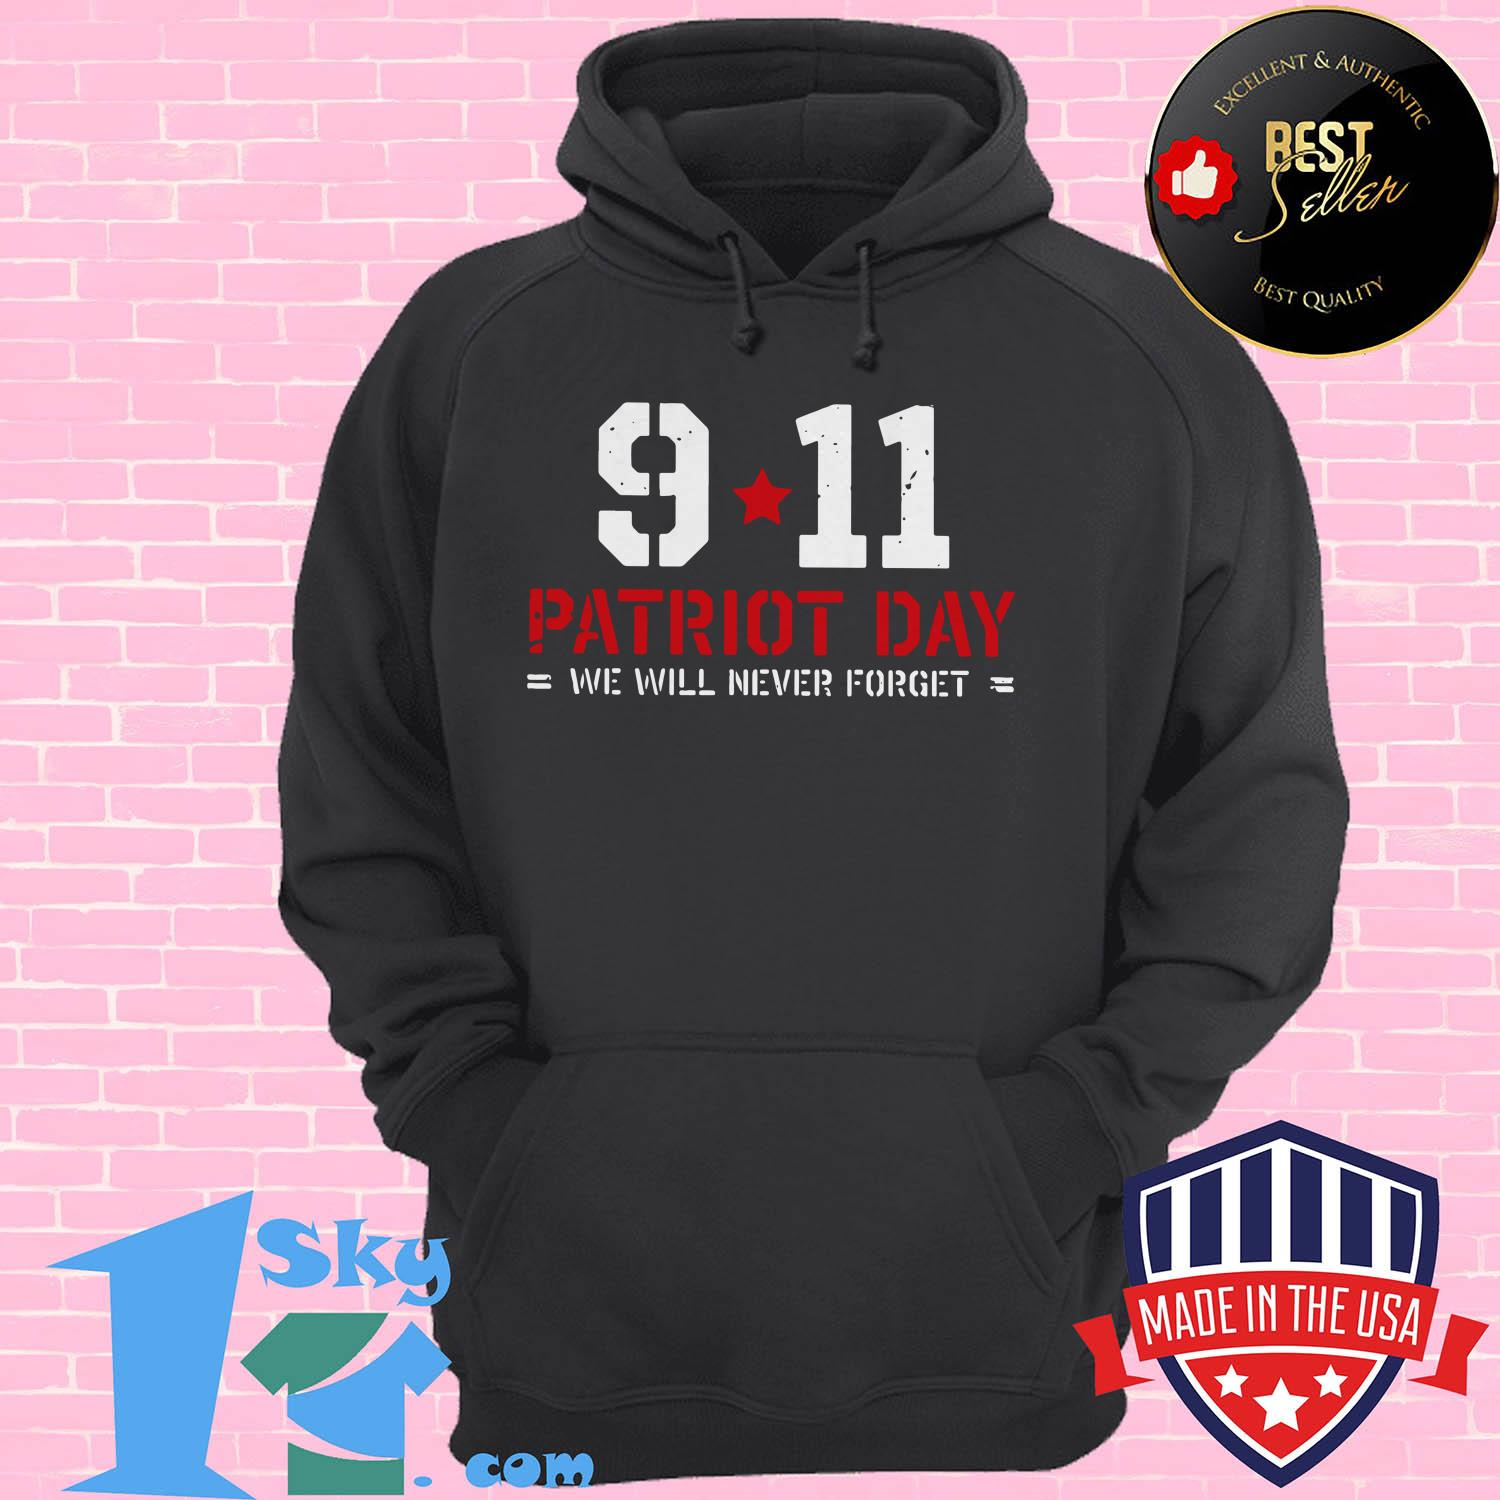 patriot day we will never forget 9 11 hoodie - Patriot day we will never forget 9-11 shirt